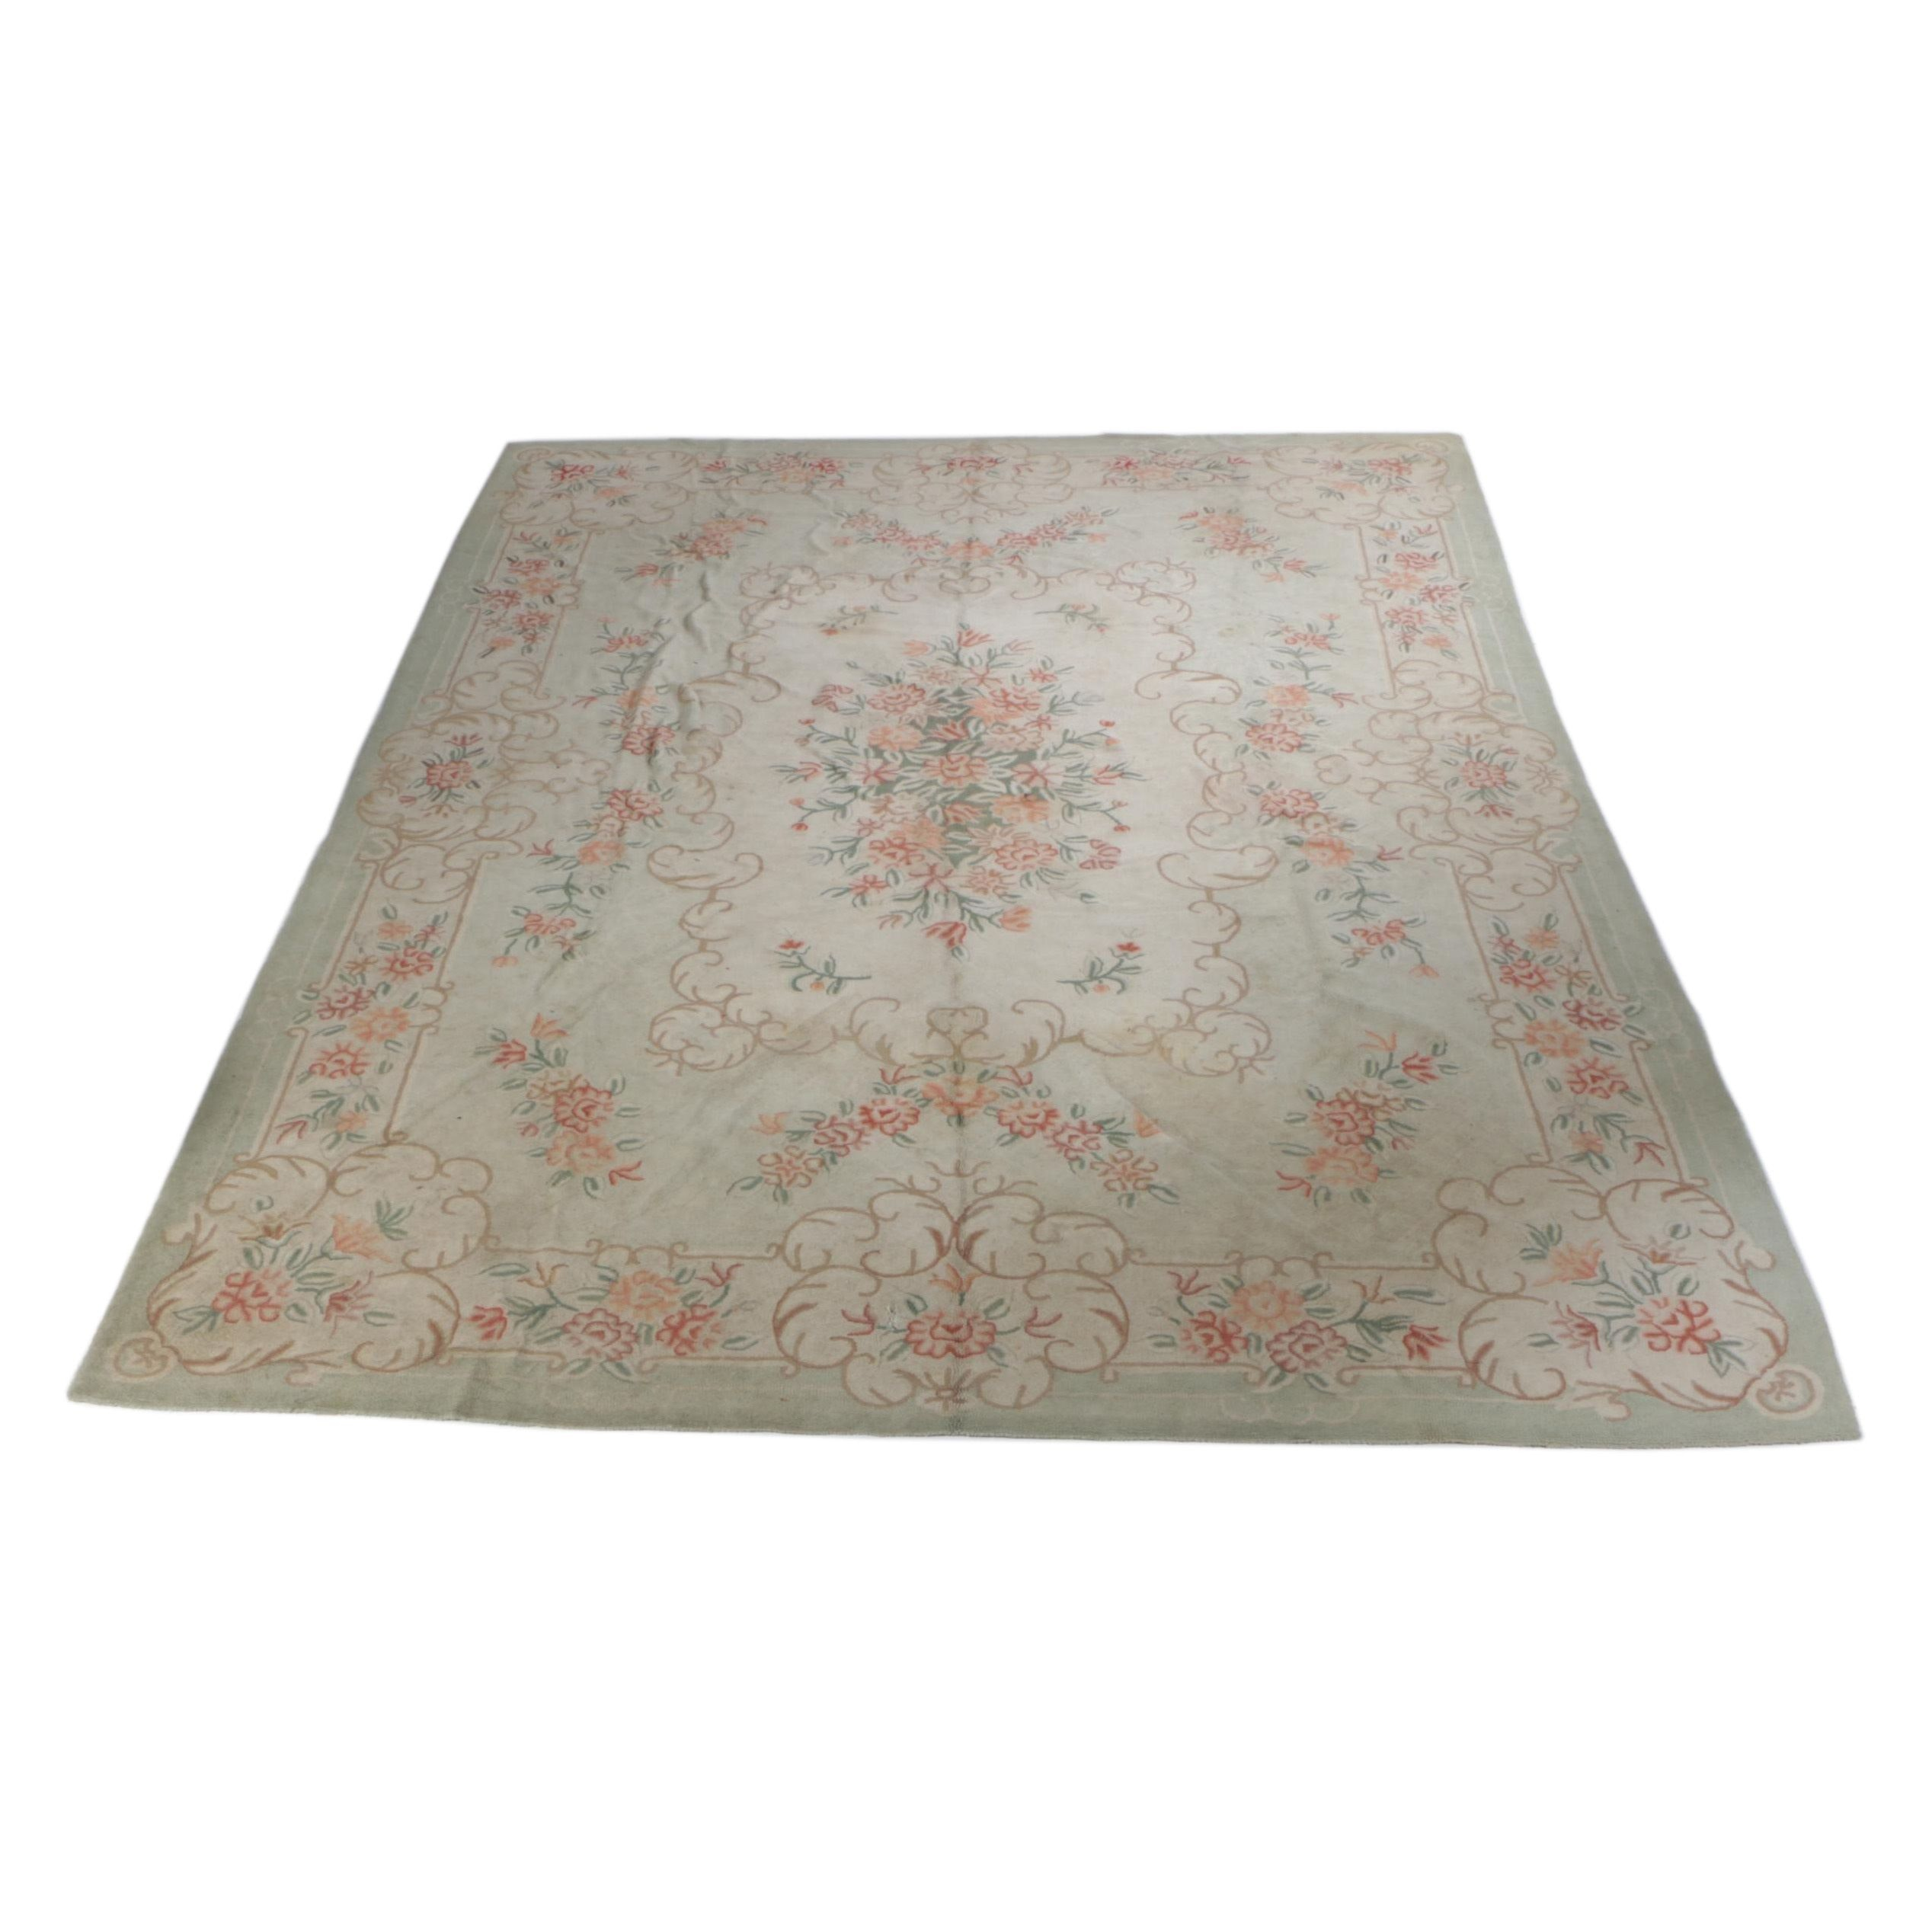 Aubusson Style Hooked Room Size Rug